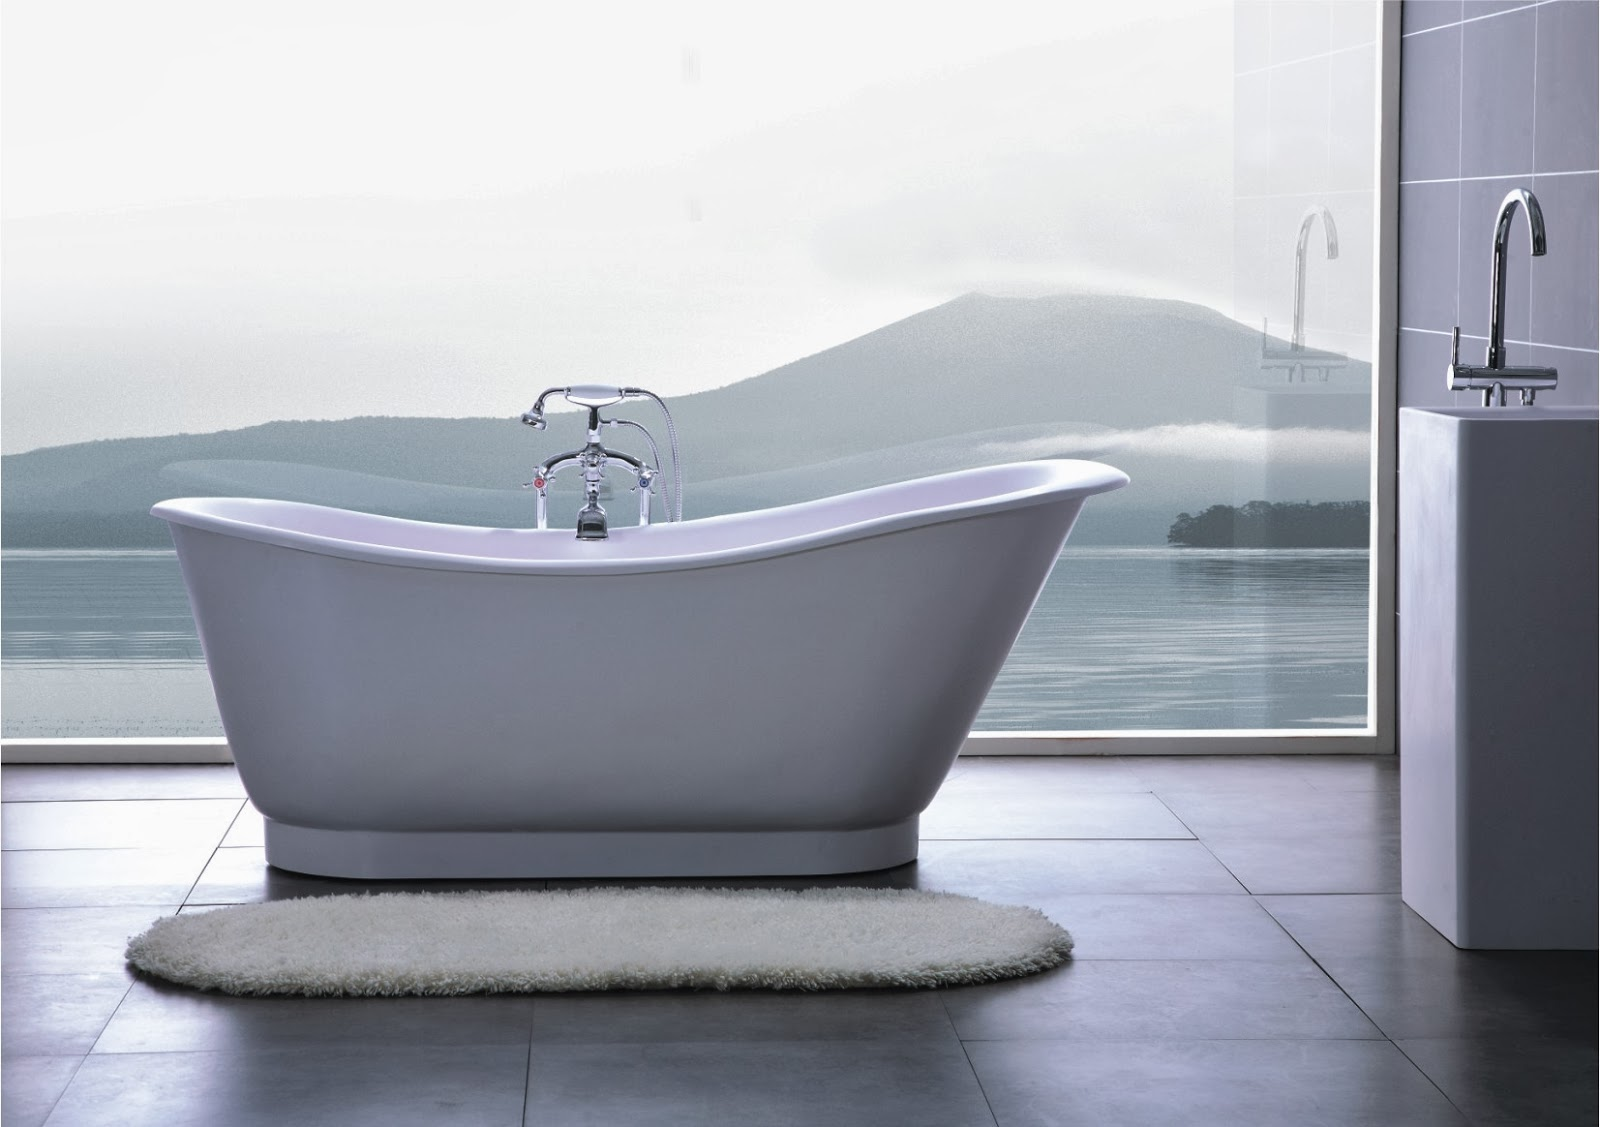 Bathroom modern white luxury bathtub feats silky feels with satin matte lacquered and smooth rounded edges in open design bathroom with marvelous nature view modern and luxurious white bathtubs desig